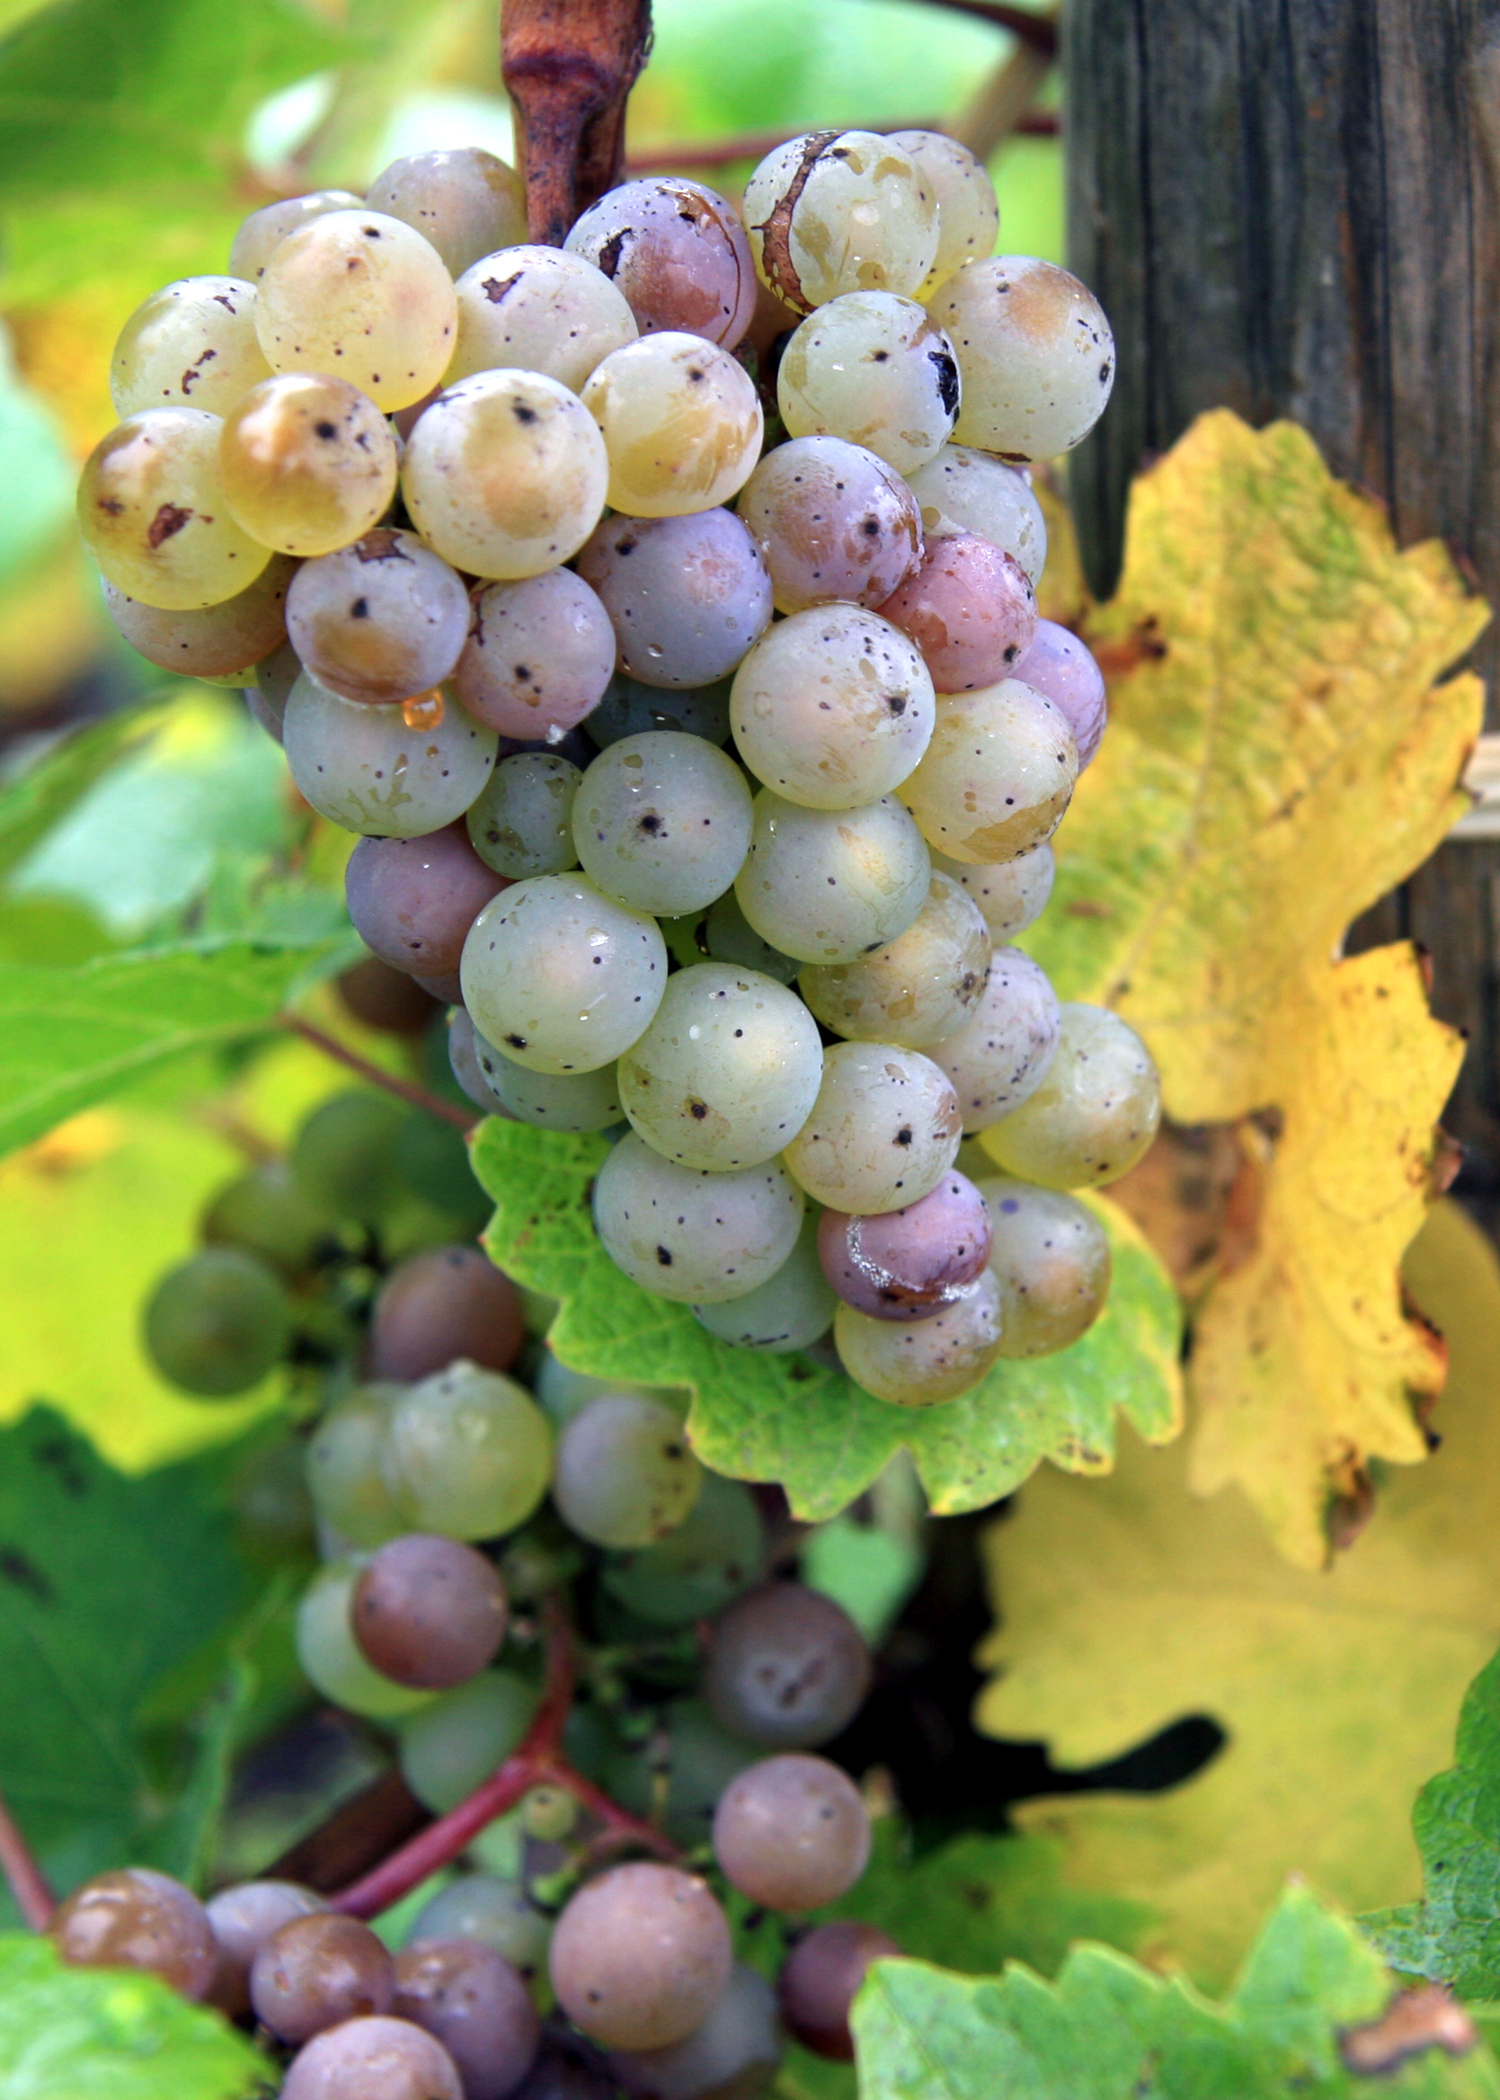 RIESLING GRAPES ON THE VINE - IMAGE COURTESY OF DRYNC.COM